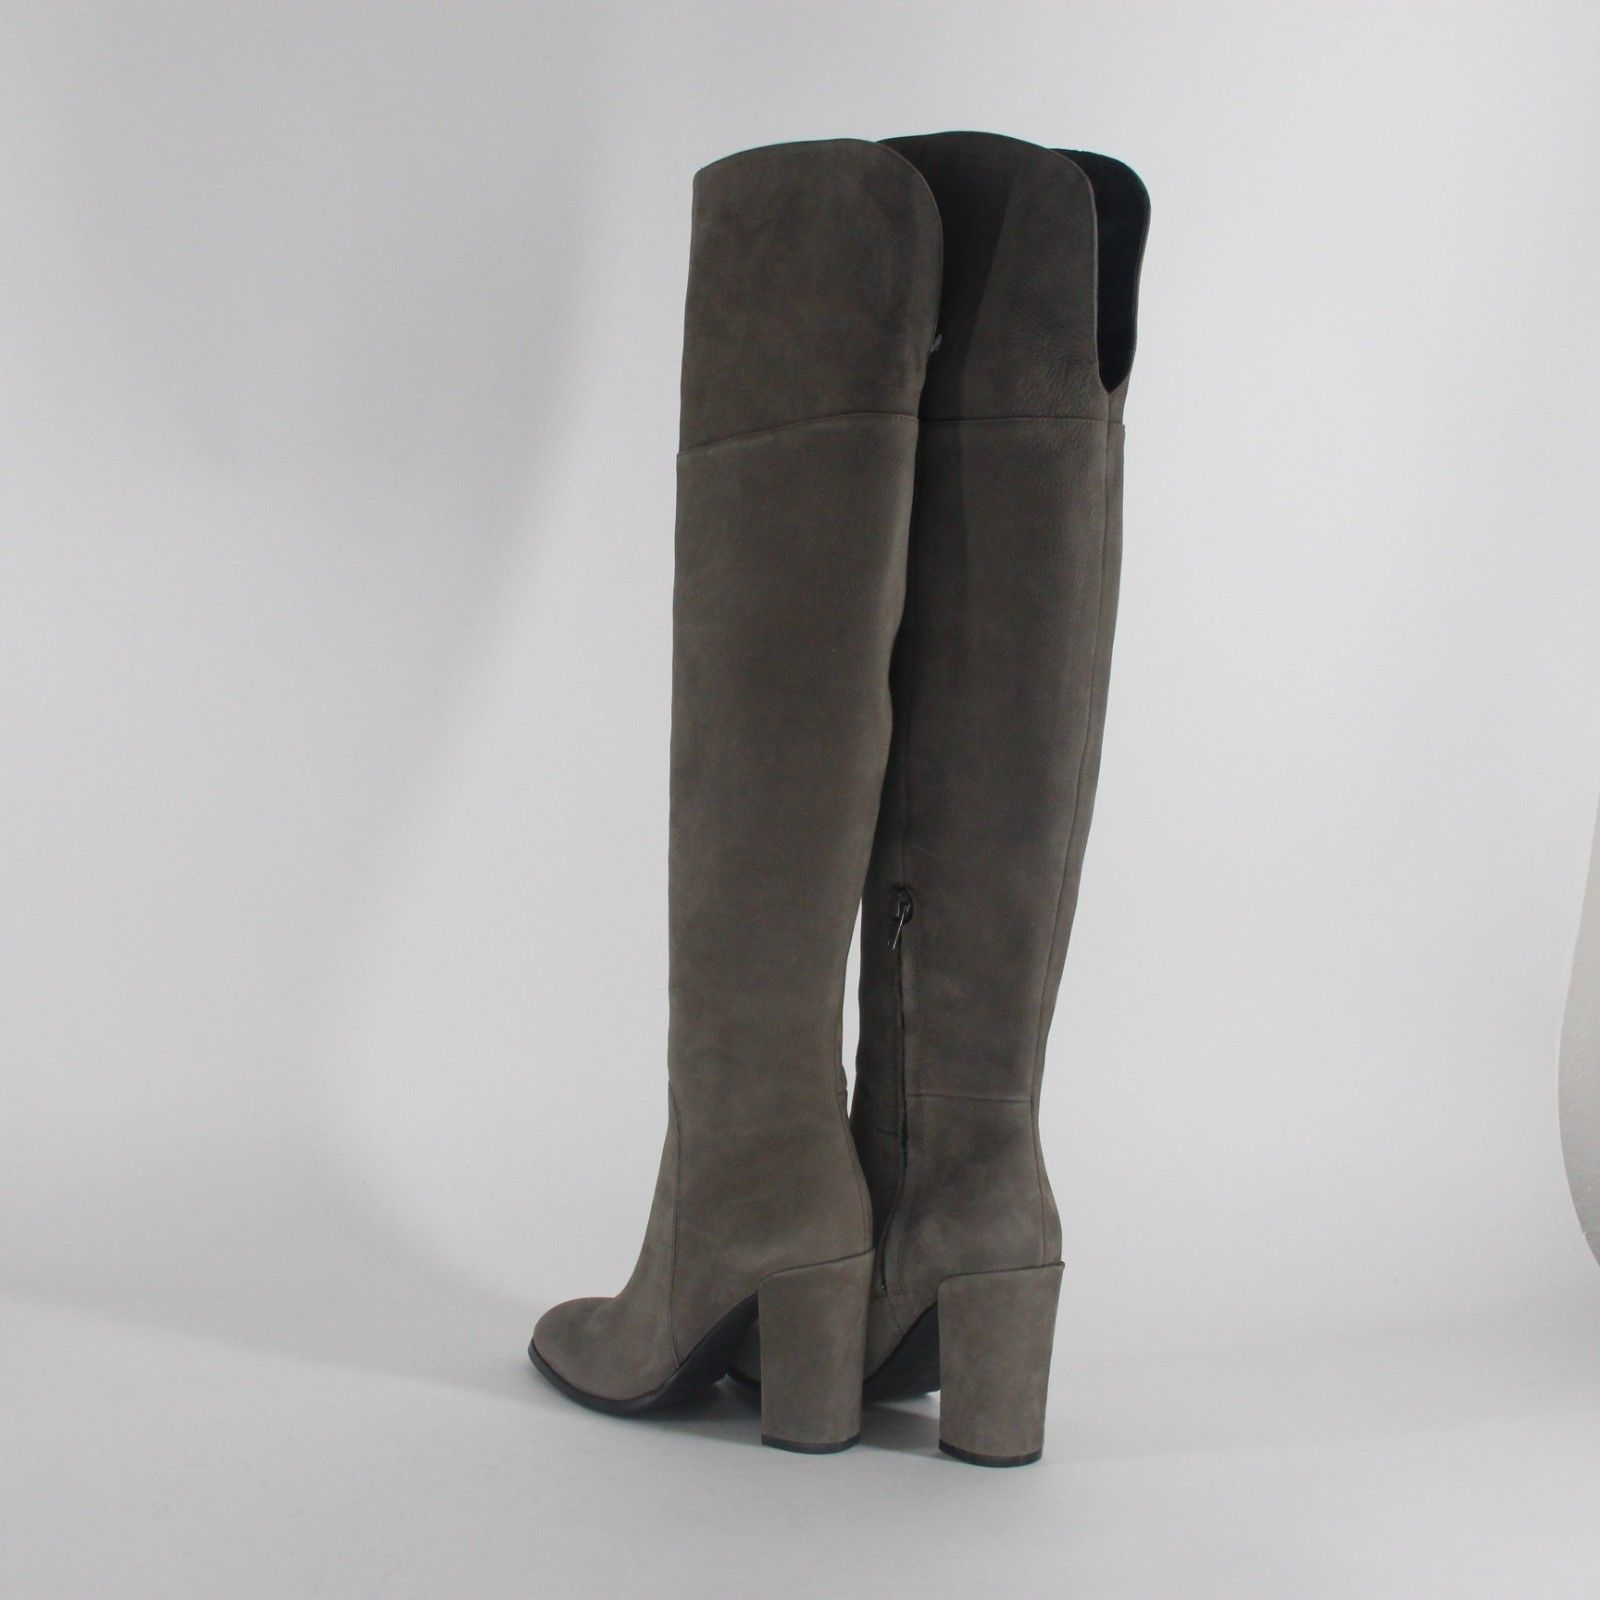 Kenneth Cole New York Women/'s Jack Over the Knee Boot Cement